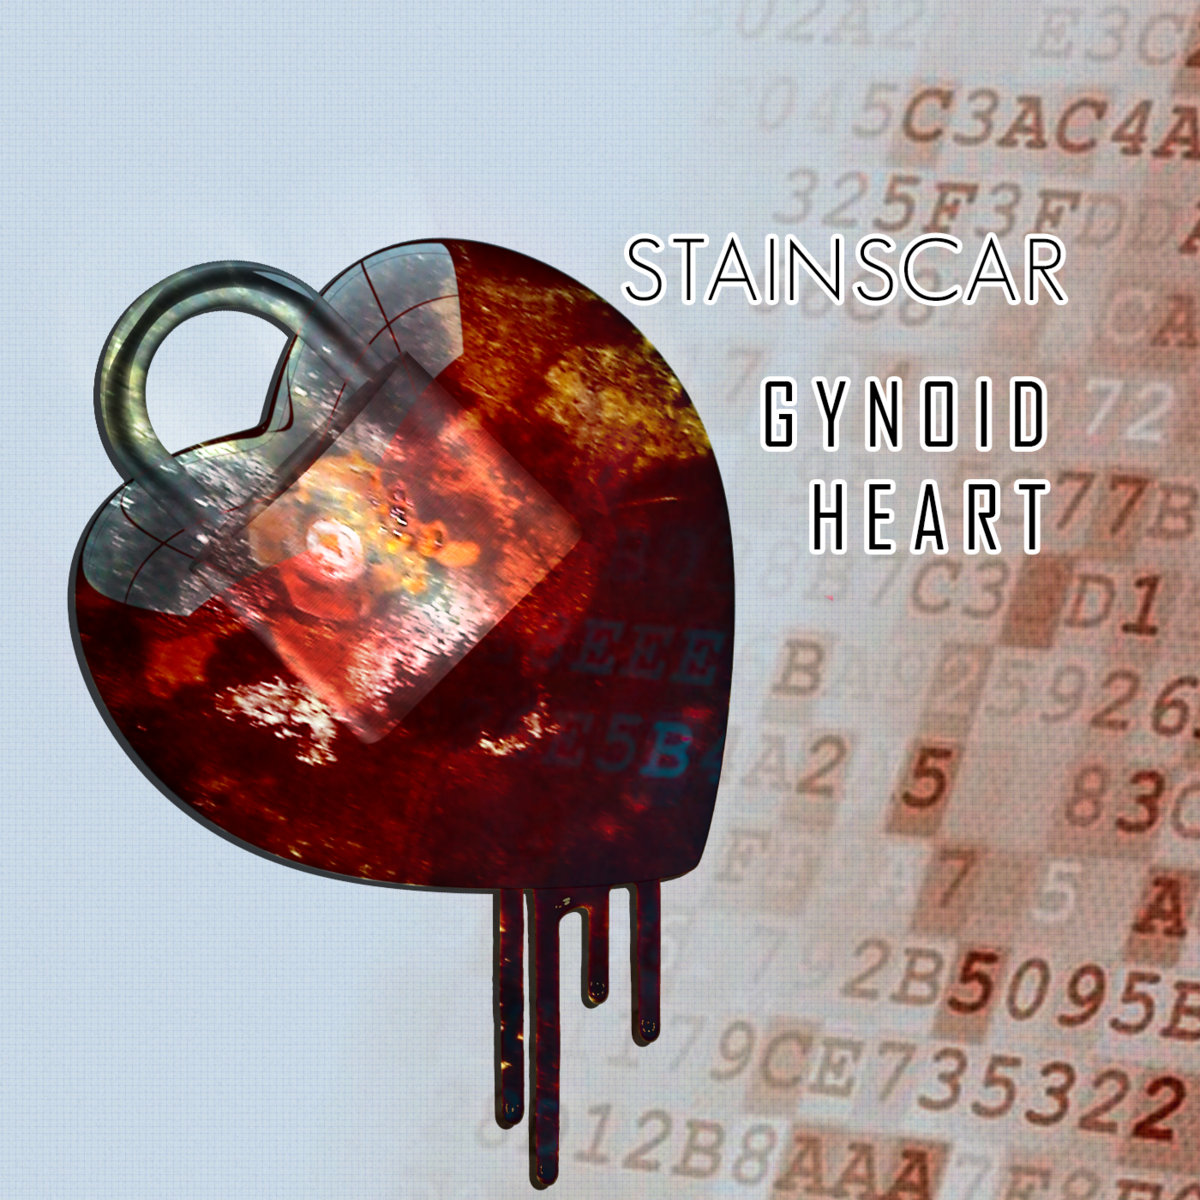 Gynoid Heart Artwork